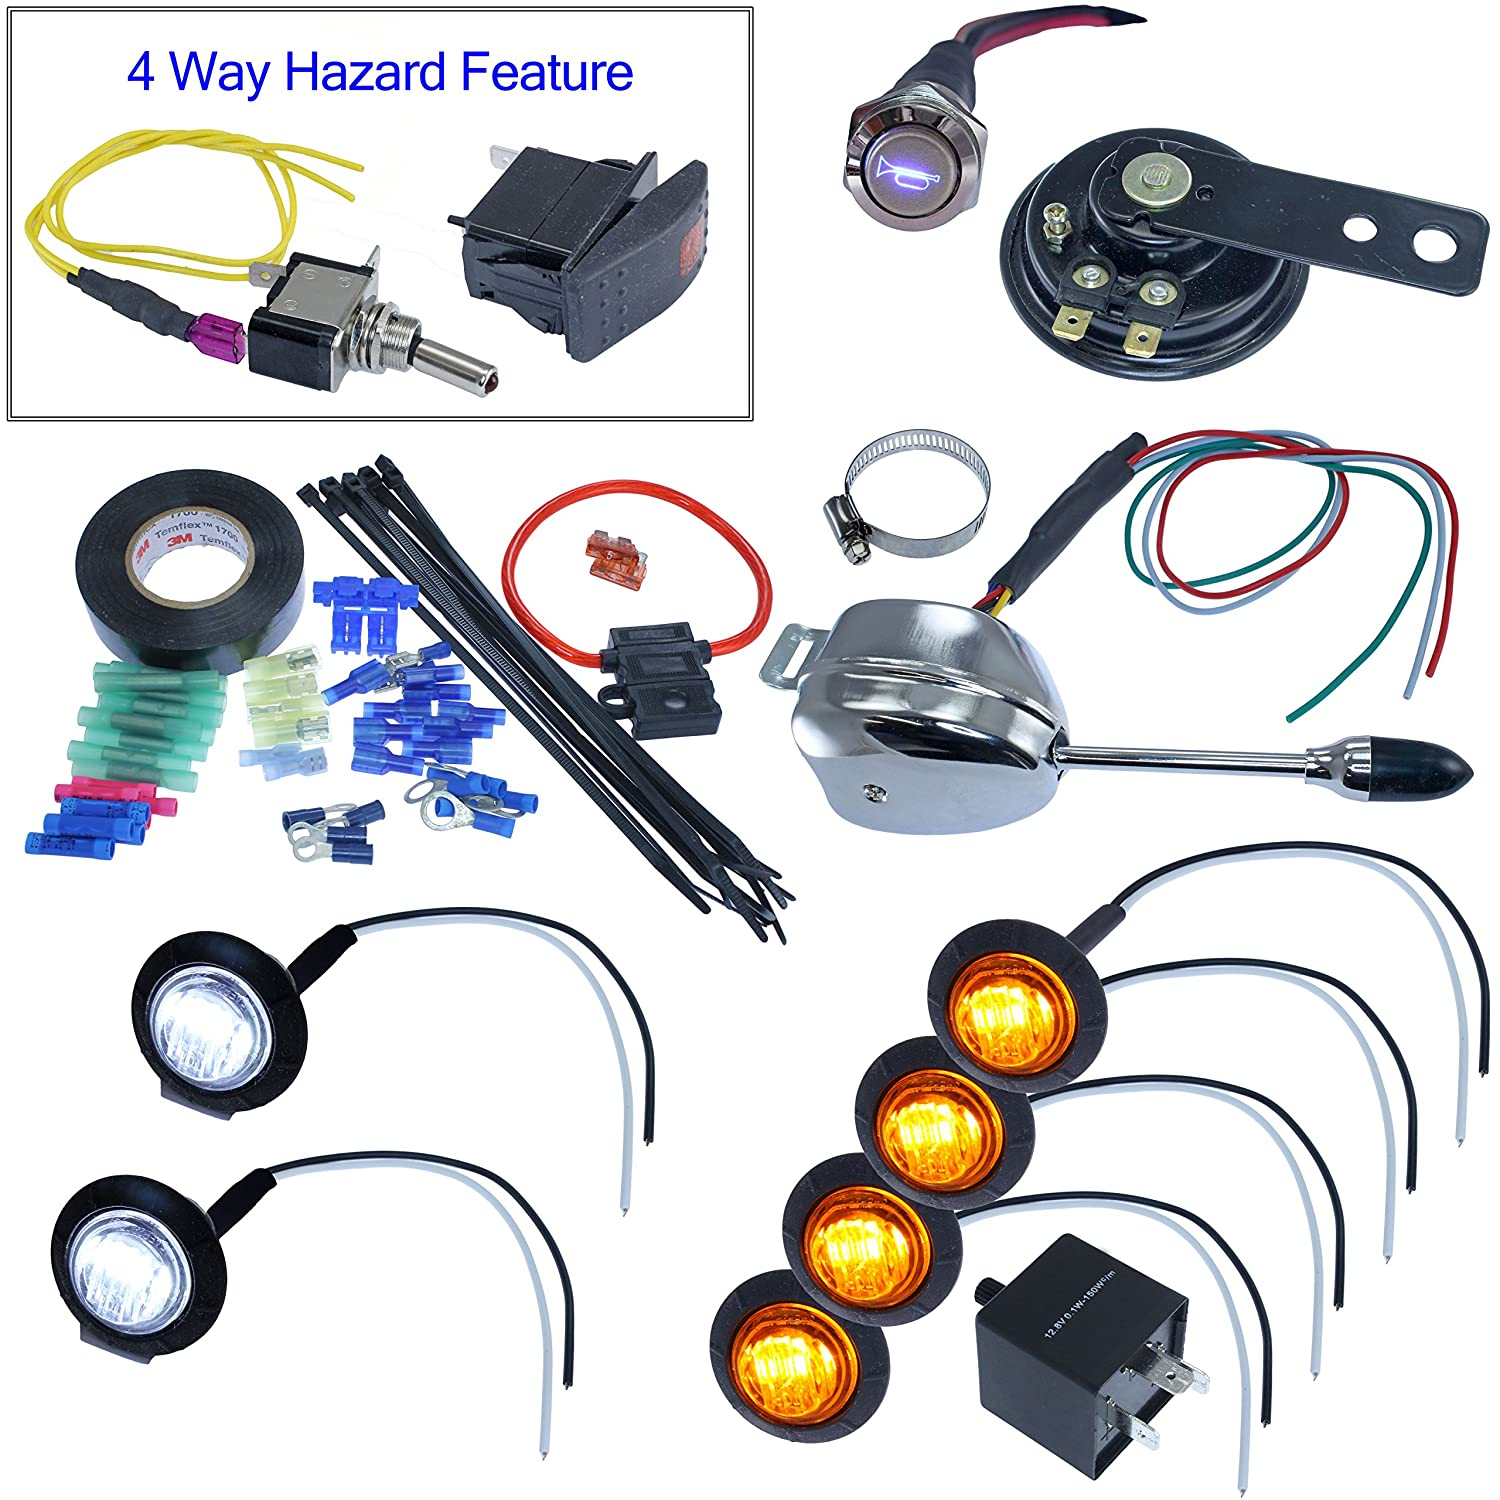 Amazon.com: Turn Signal Kits (Horn & Install Kit, Lever Switch): Automotive